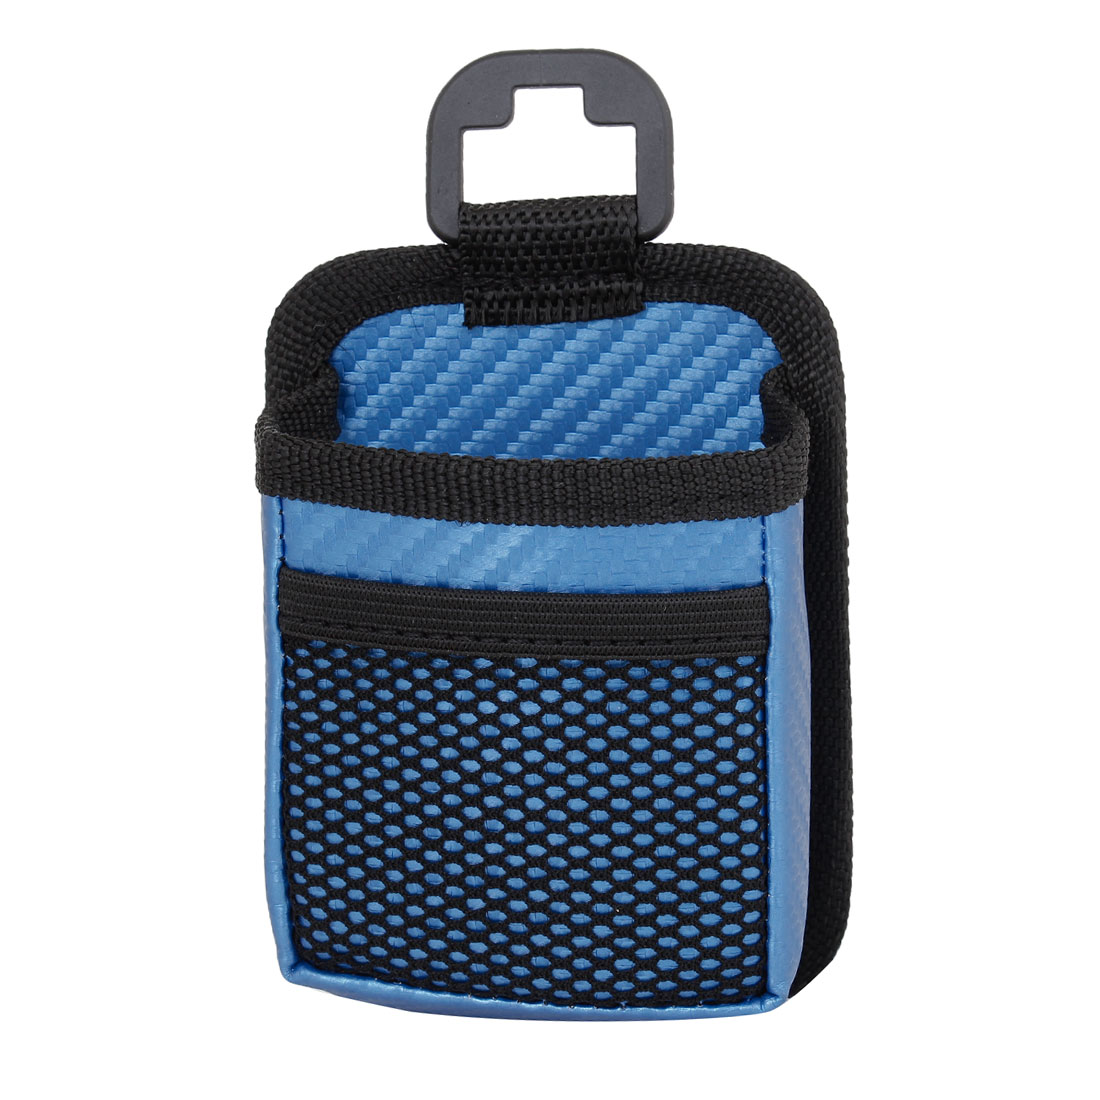 Van Cars Truck Blue Nylon Mesh Pattern Mobile Phone MP3 Holder Case Pouch